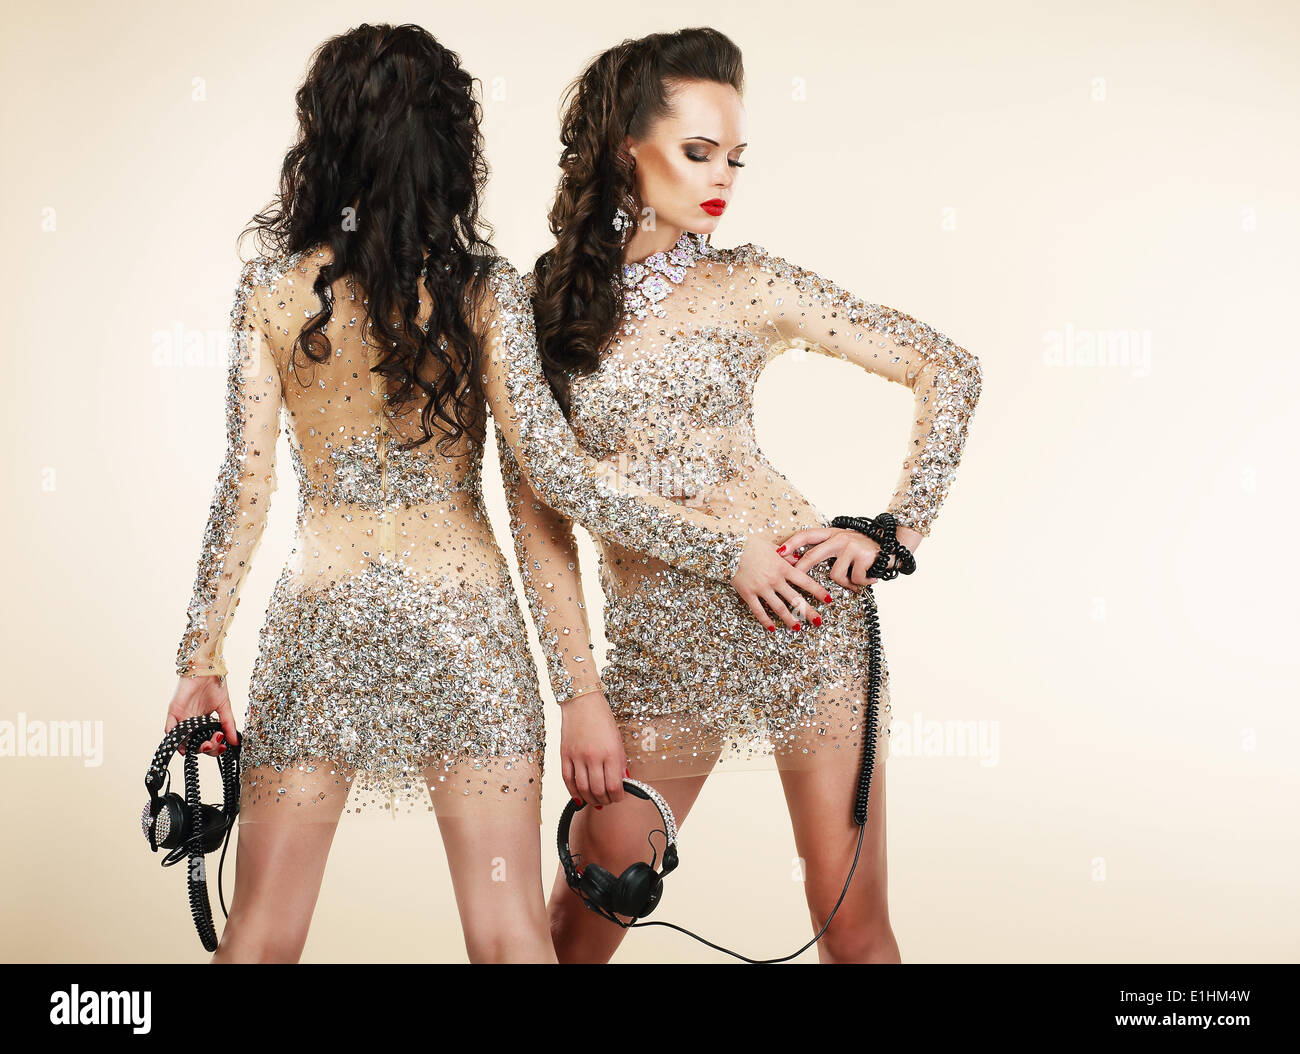 Fete. Clubbing. Two Women in Shiny Silver Dresses with Rhinestones - Stock Image